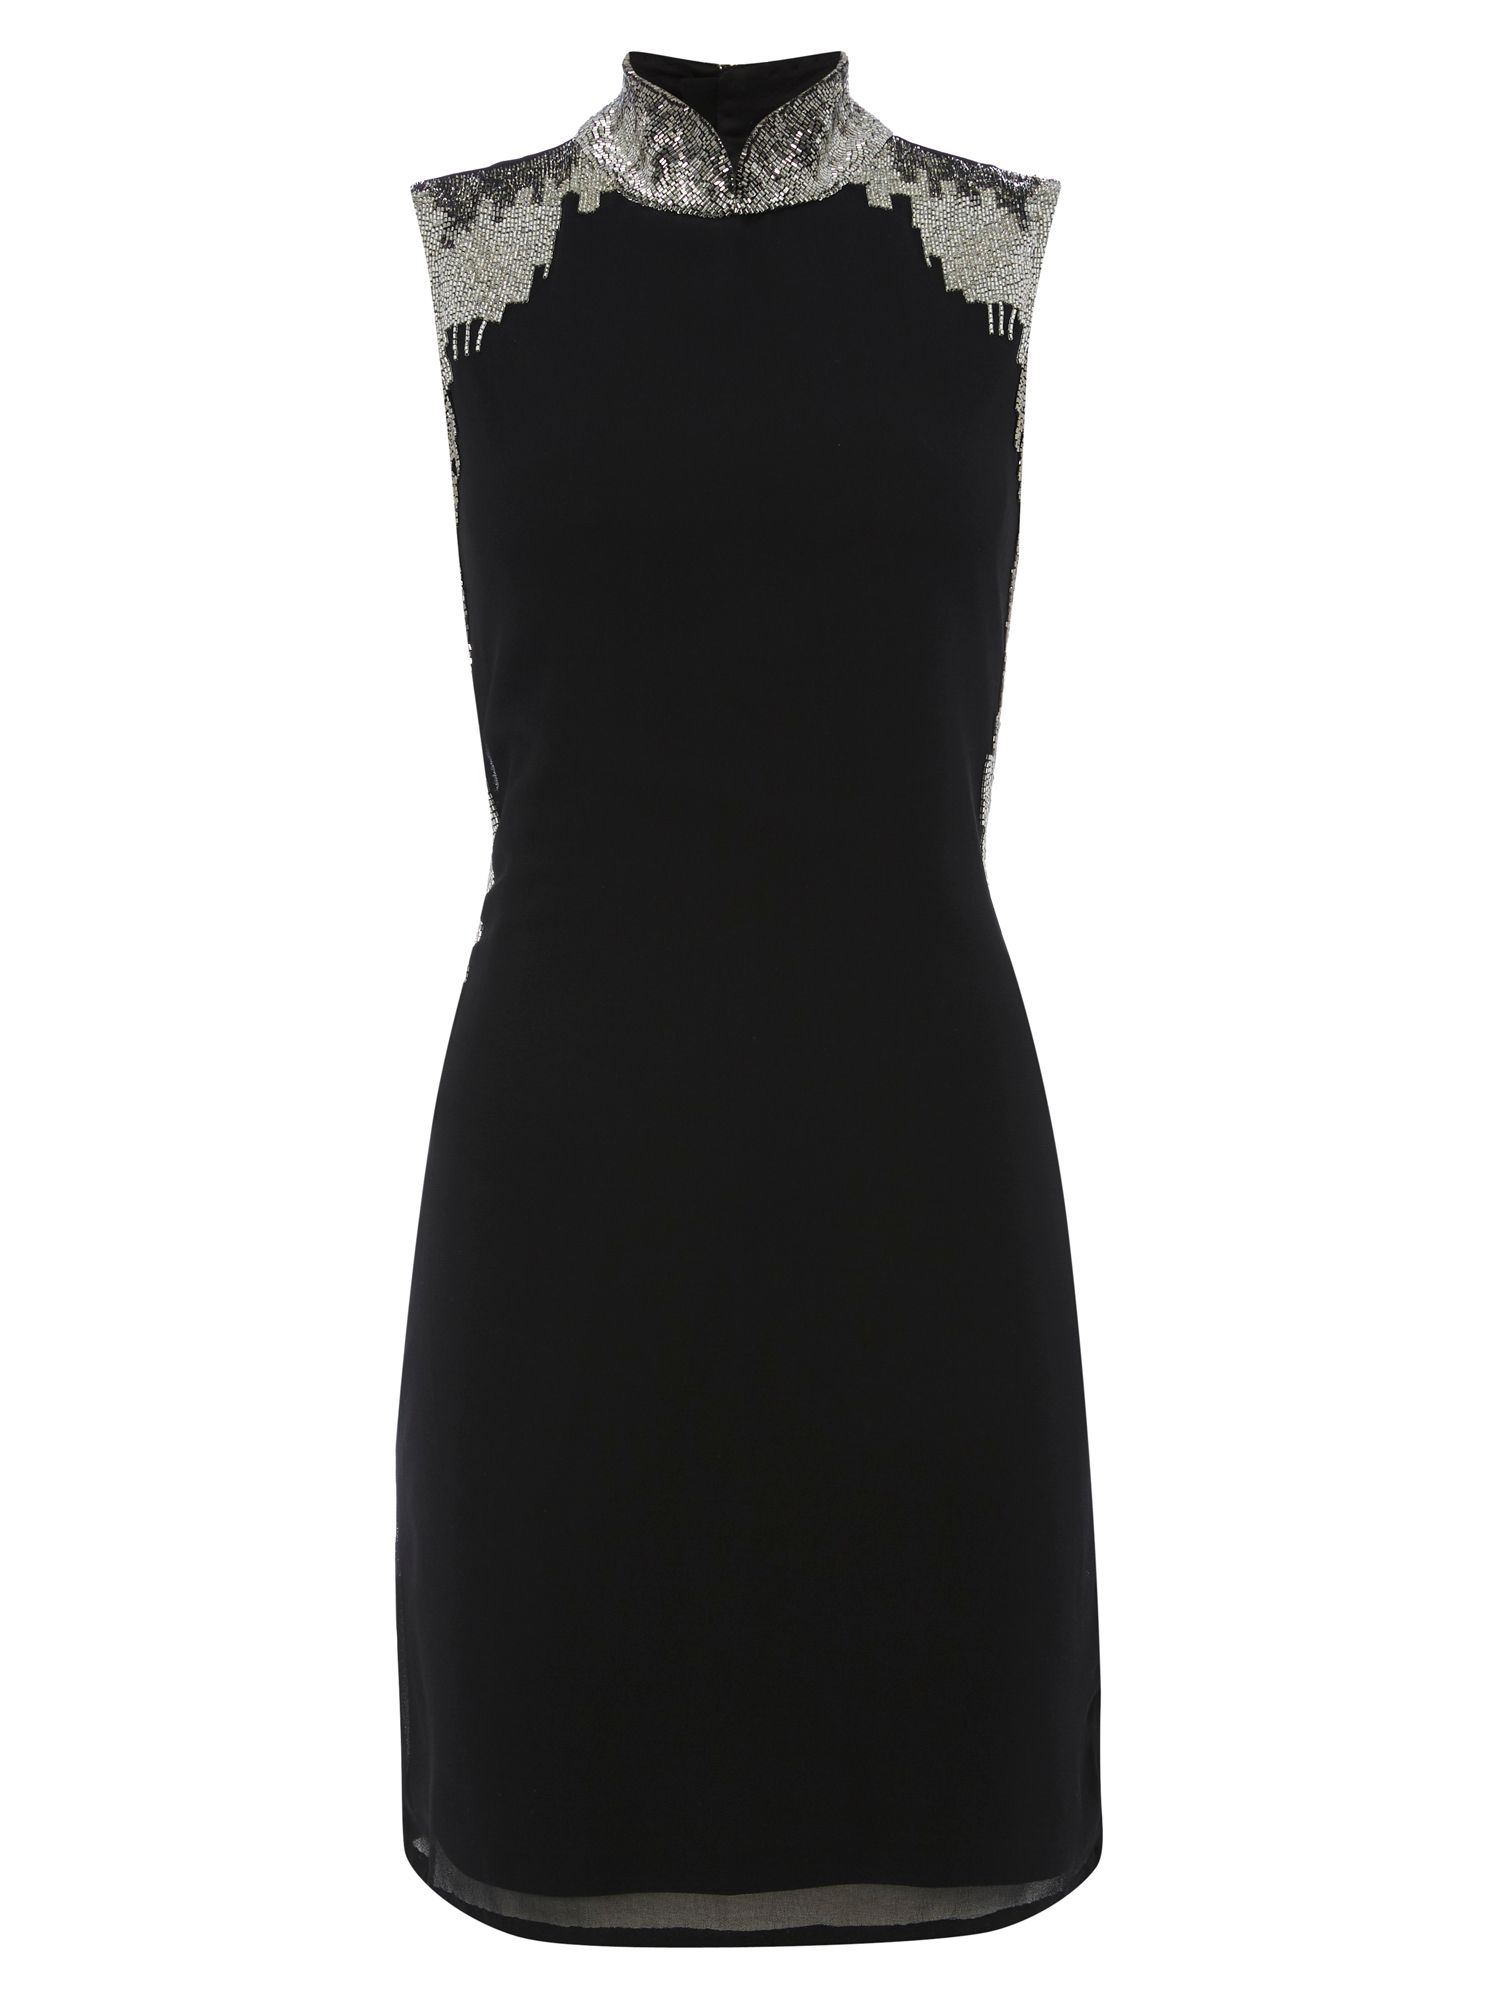 RAISHMA Black High Collar Embellished Dress, Black